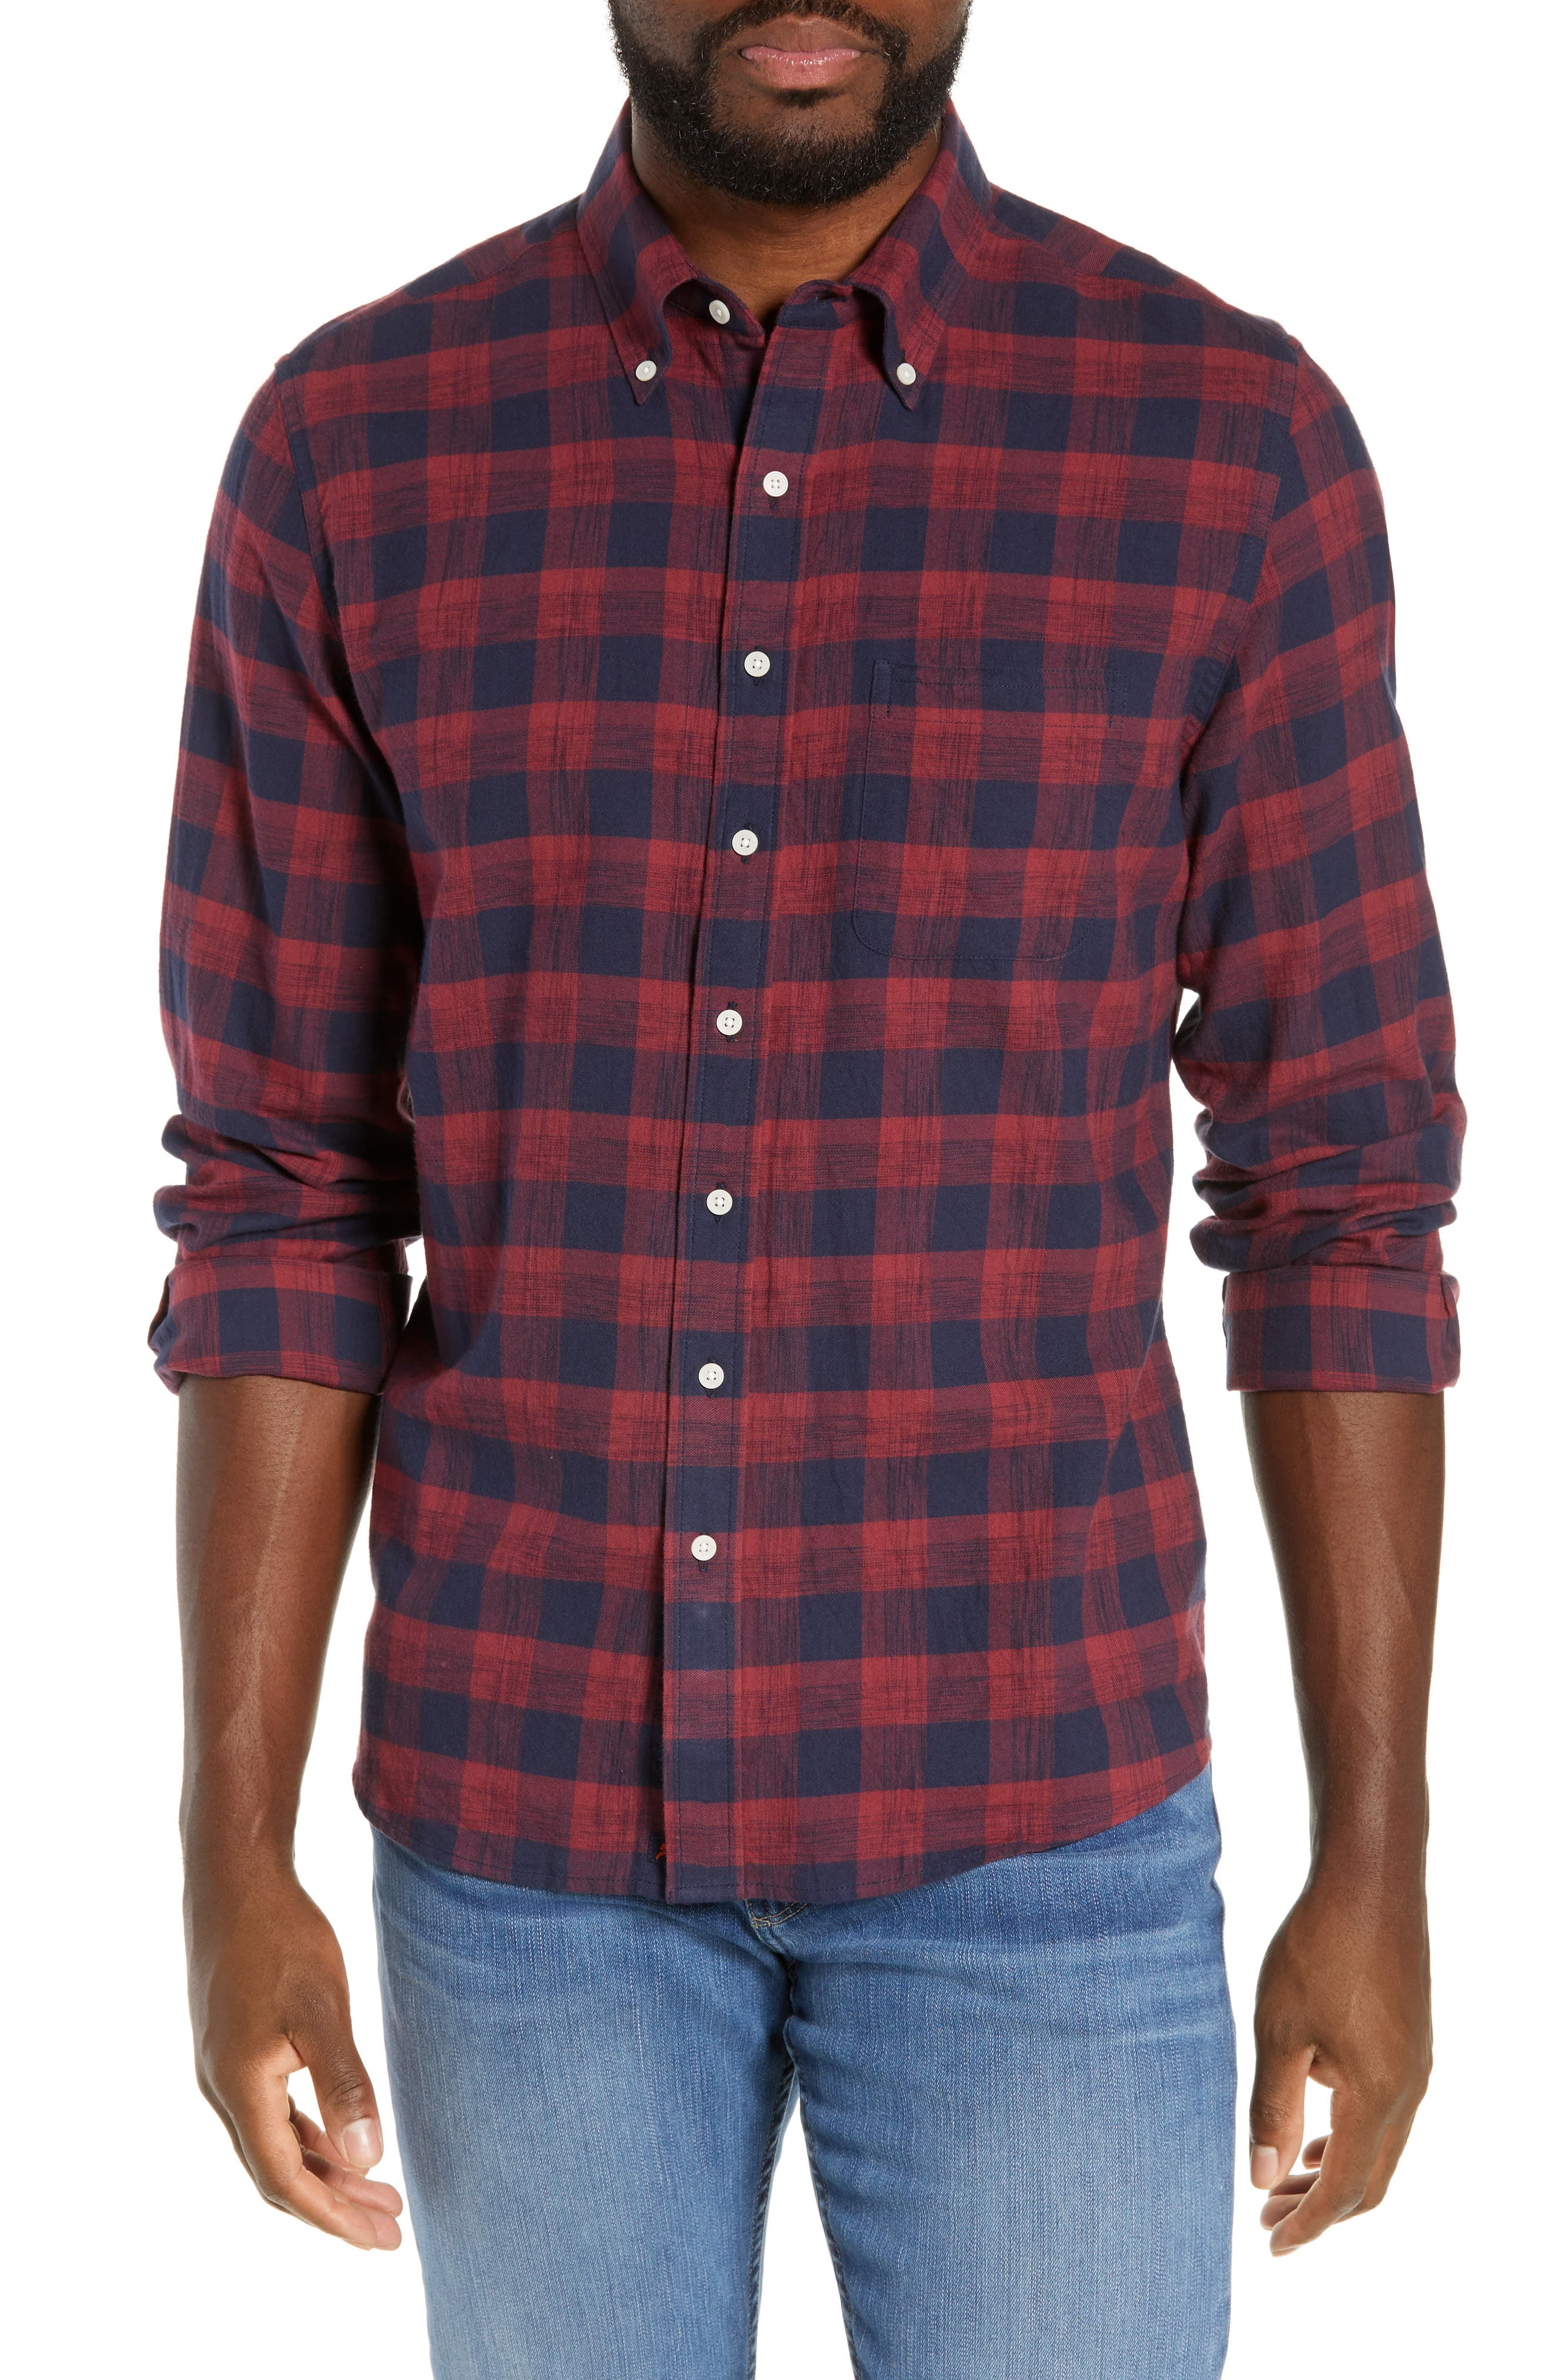 447e9cc17401 Men s Flannel Shirts - Long Sleeve - Country   Outdoors Clothing